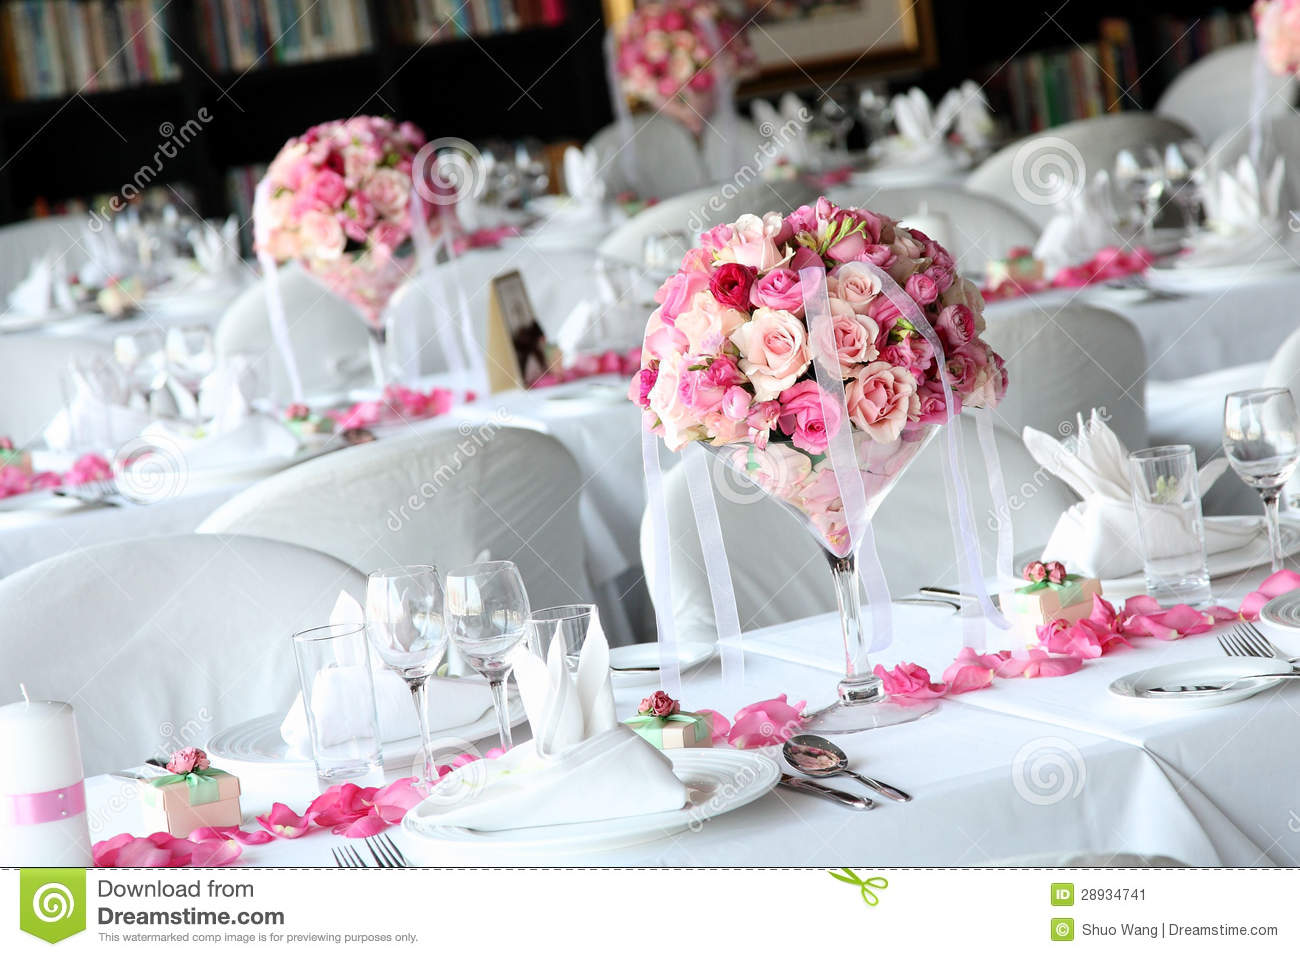 Wedding table stock image image 28934741 for Decoration images